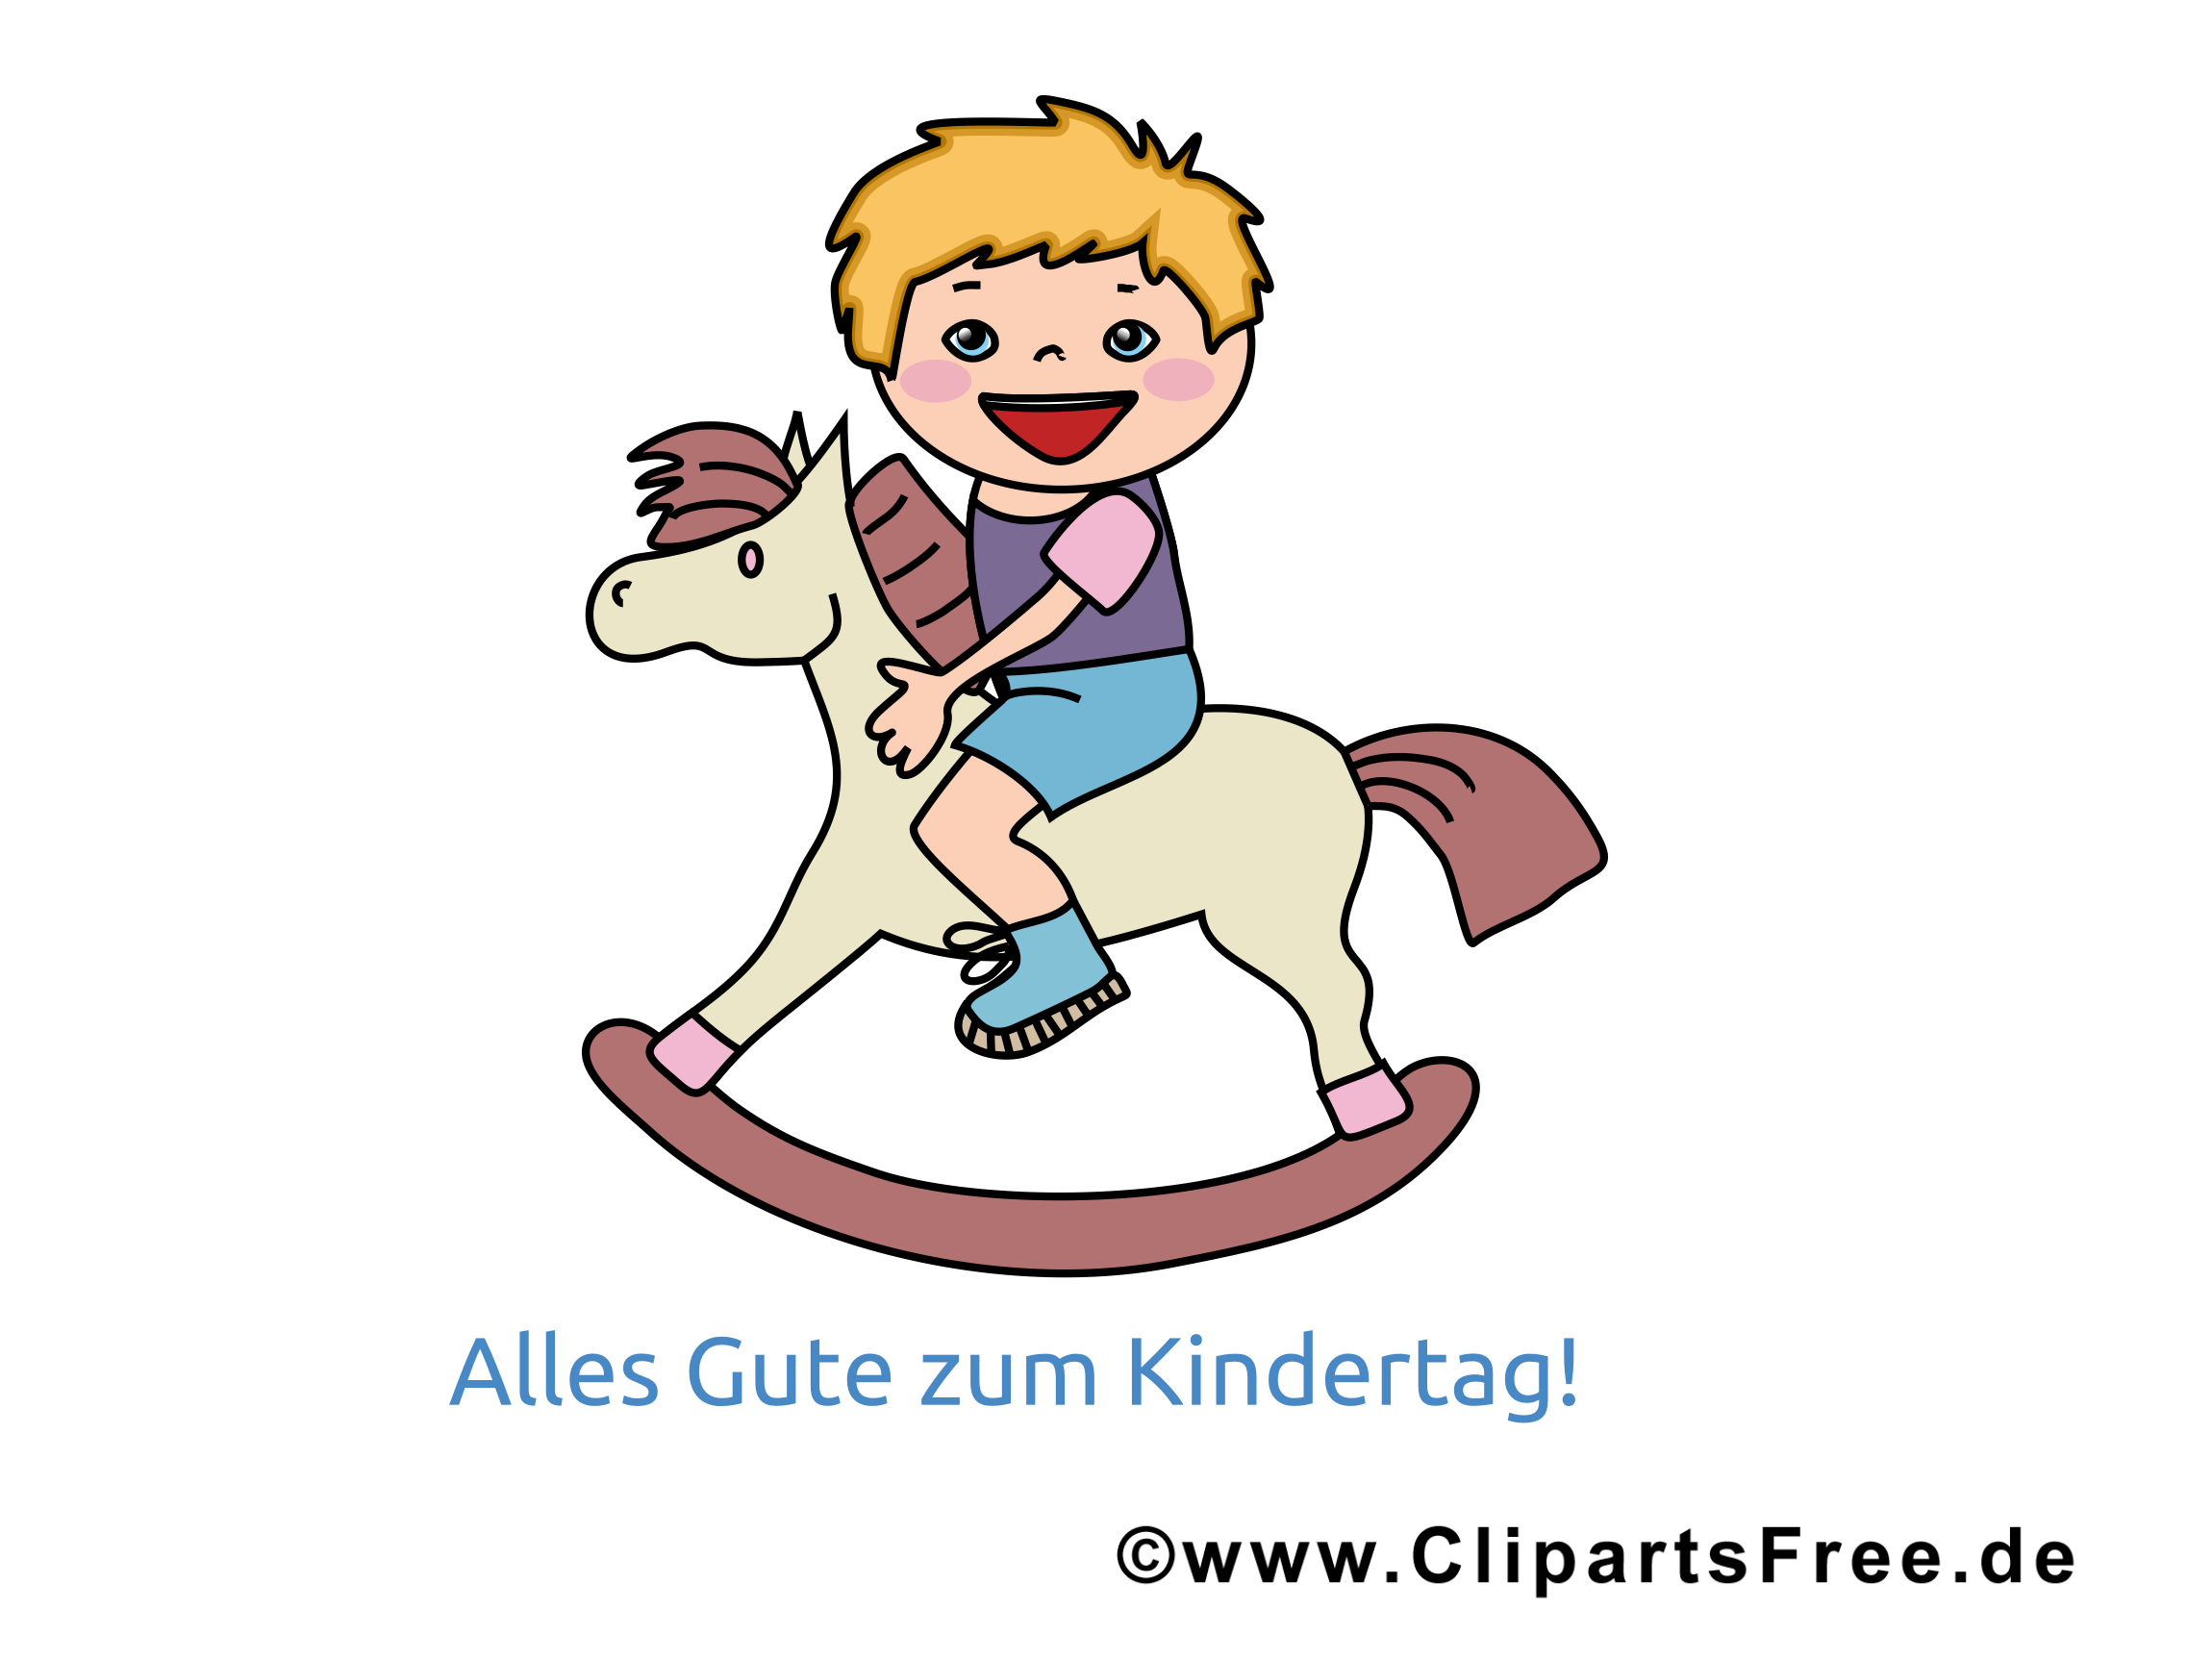 Child's Day Picture, GB Pic, Cartoon, Illustratie